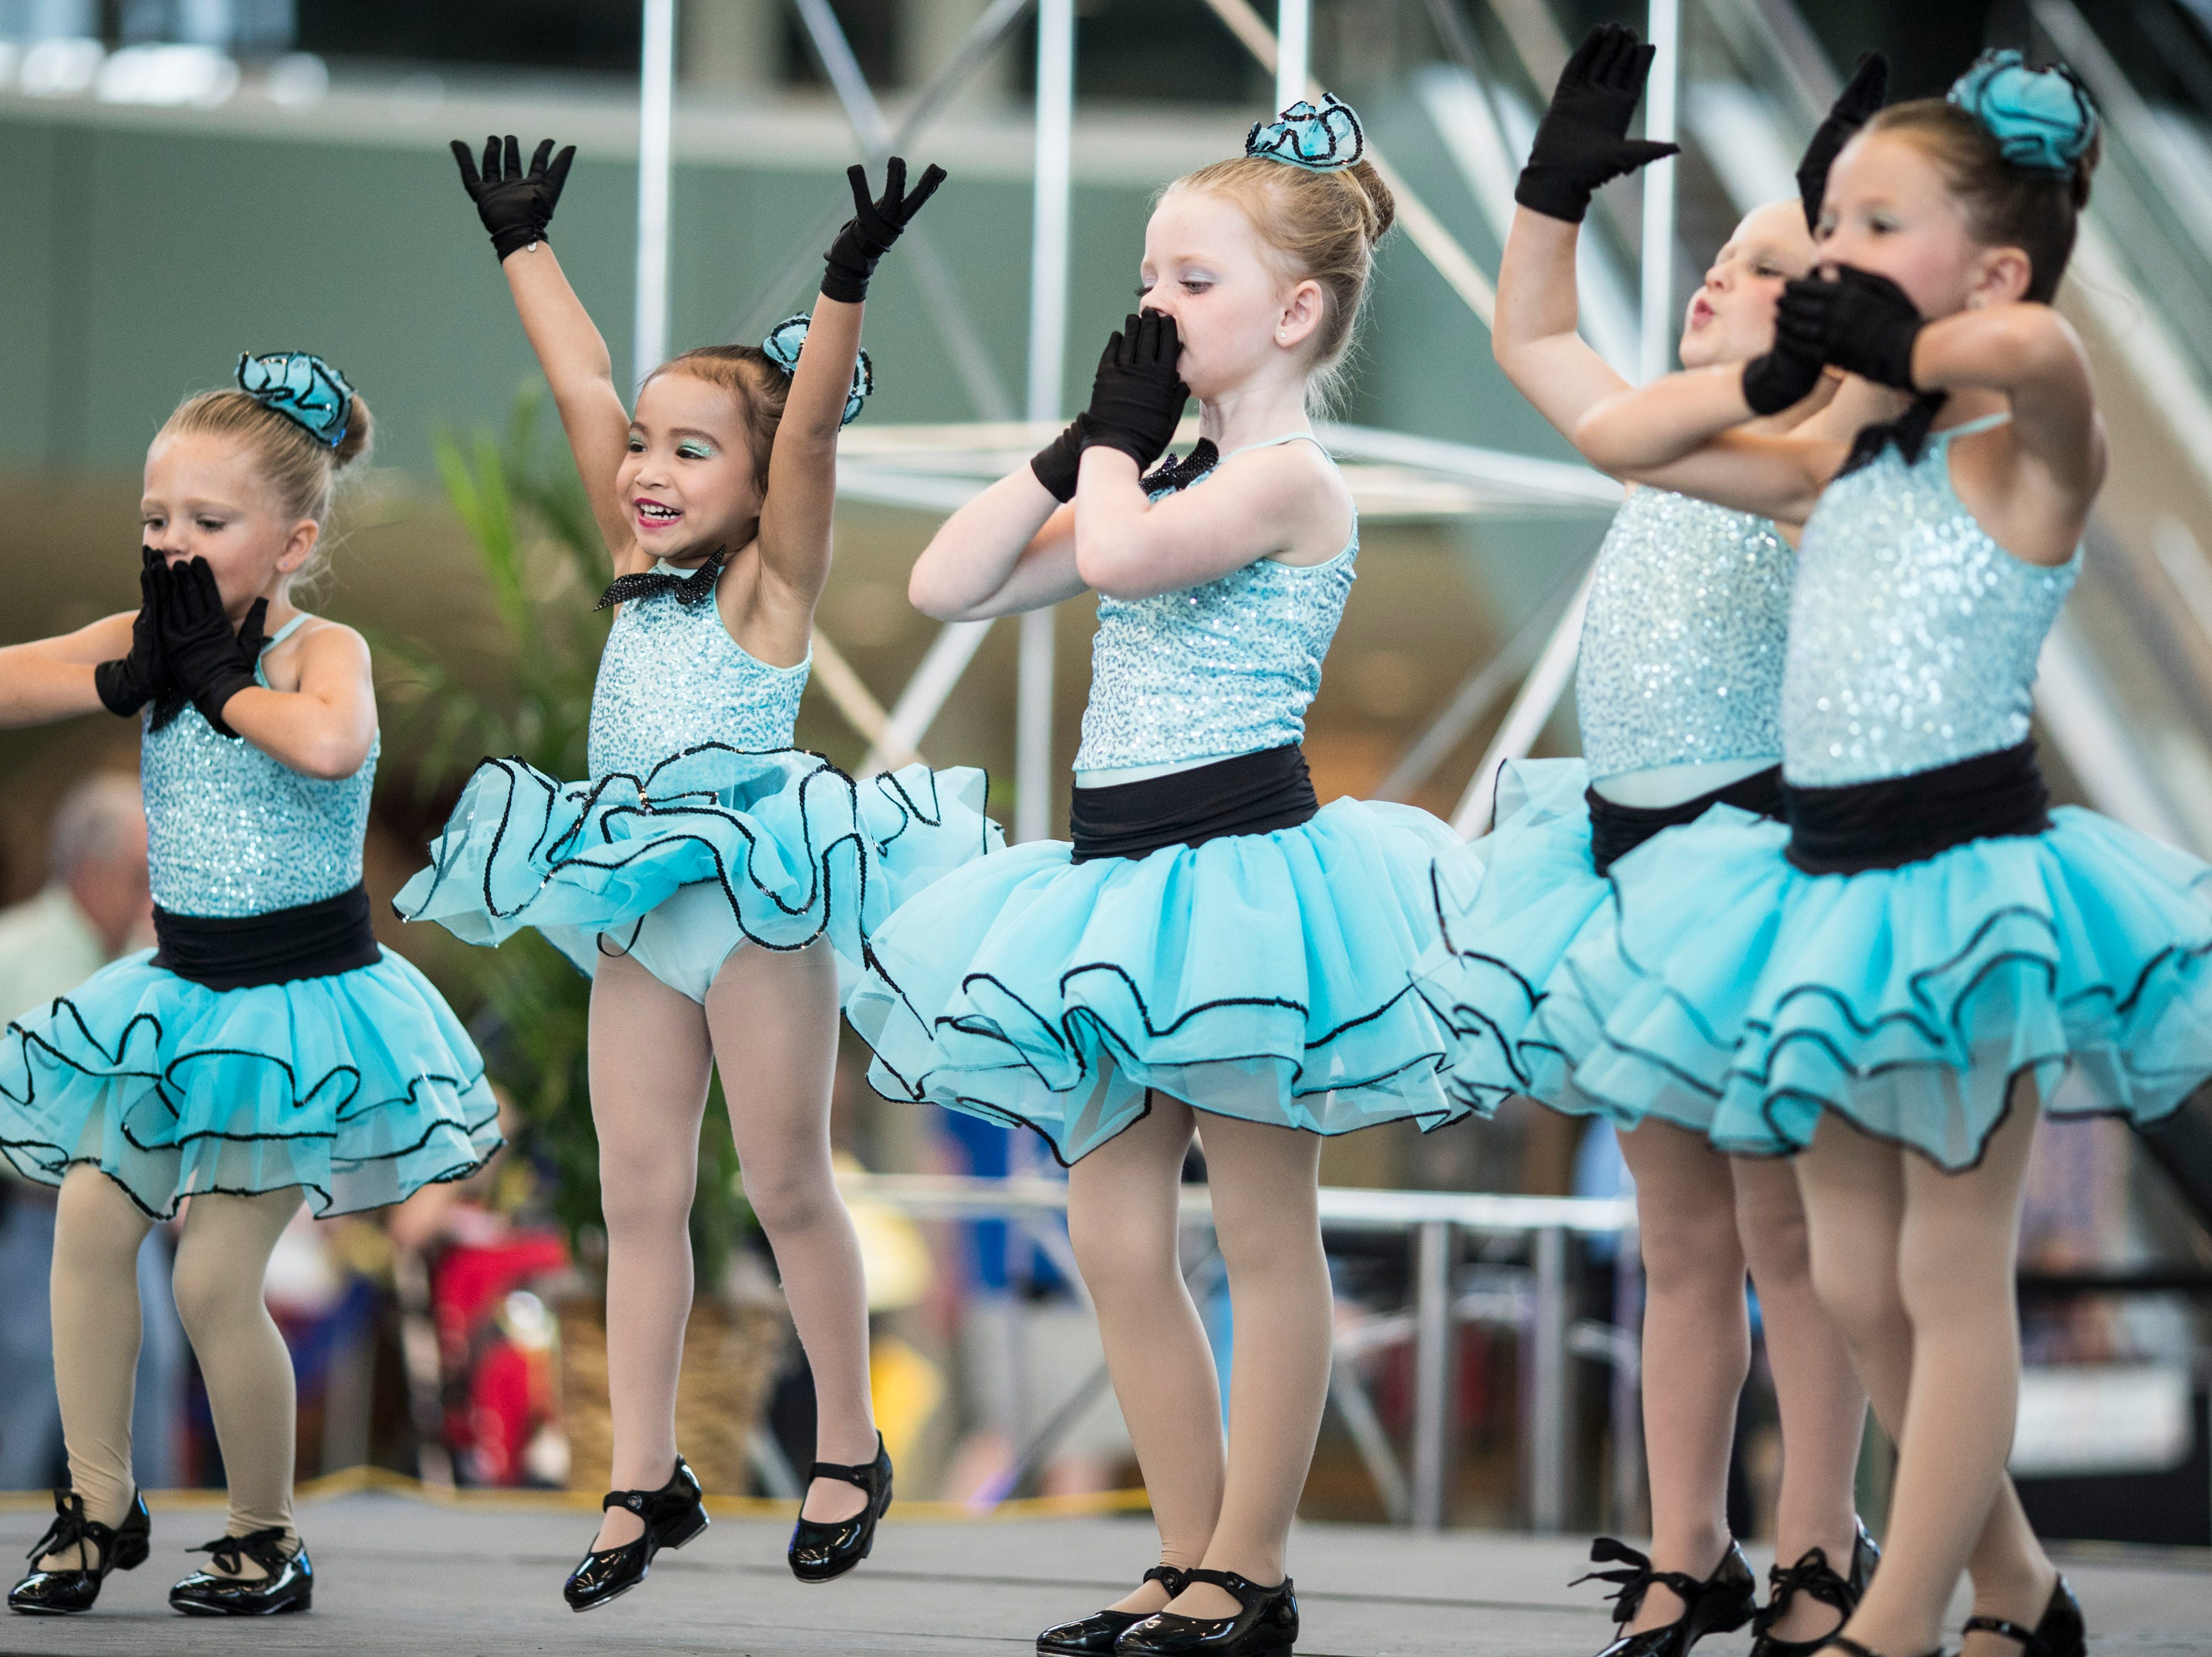 Connie's Performing Arts ages three to five perform at the Kentucky State Fair on Monday. Aug. 20, 2018